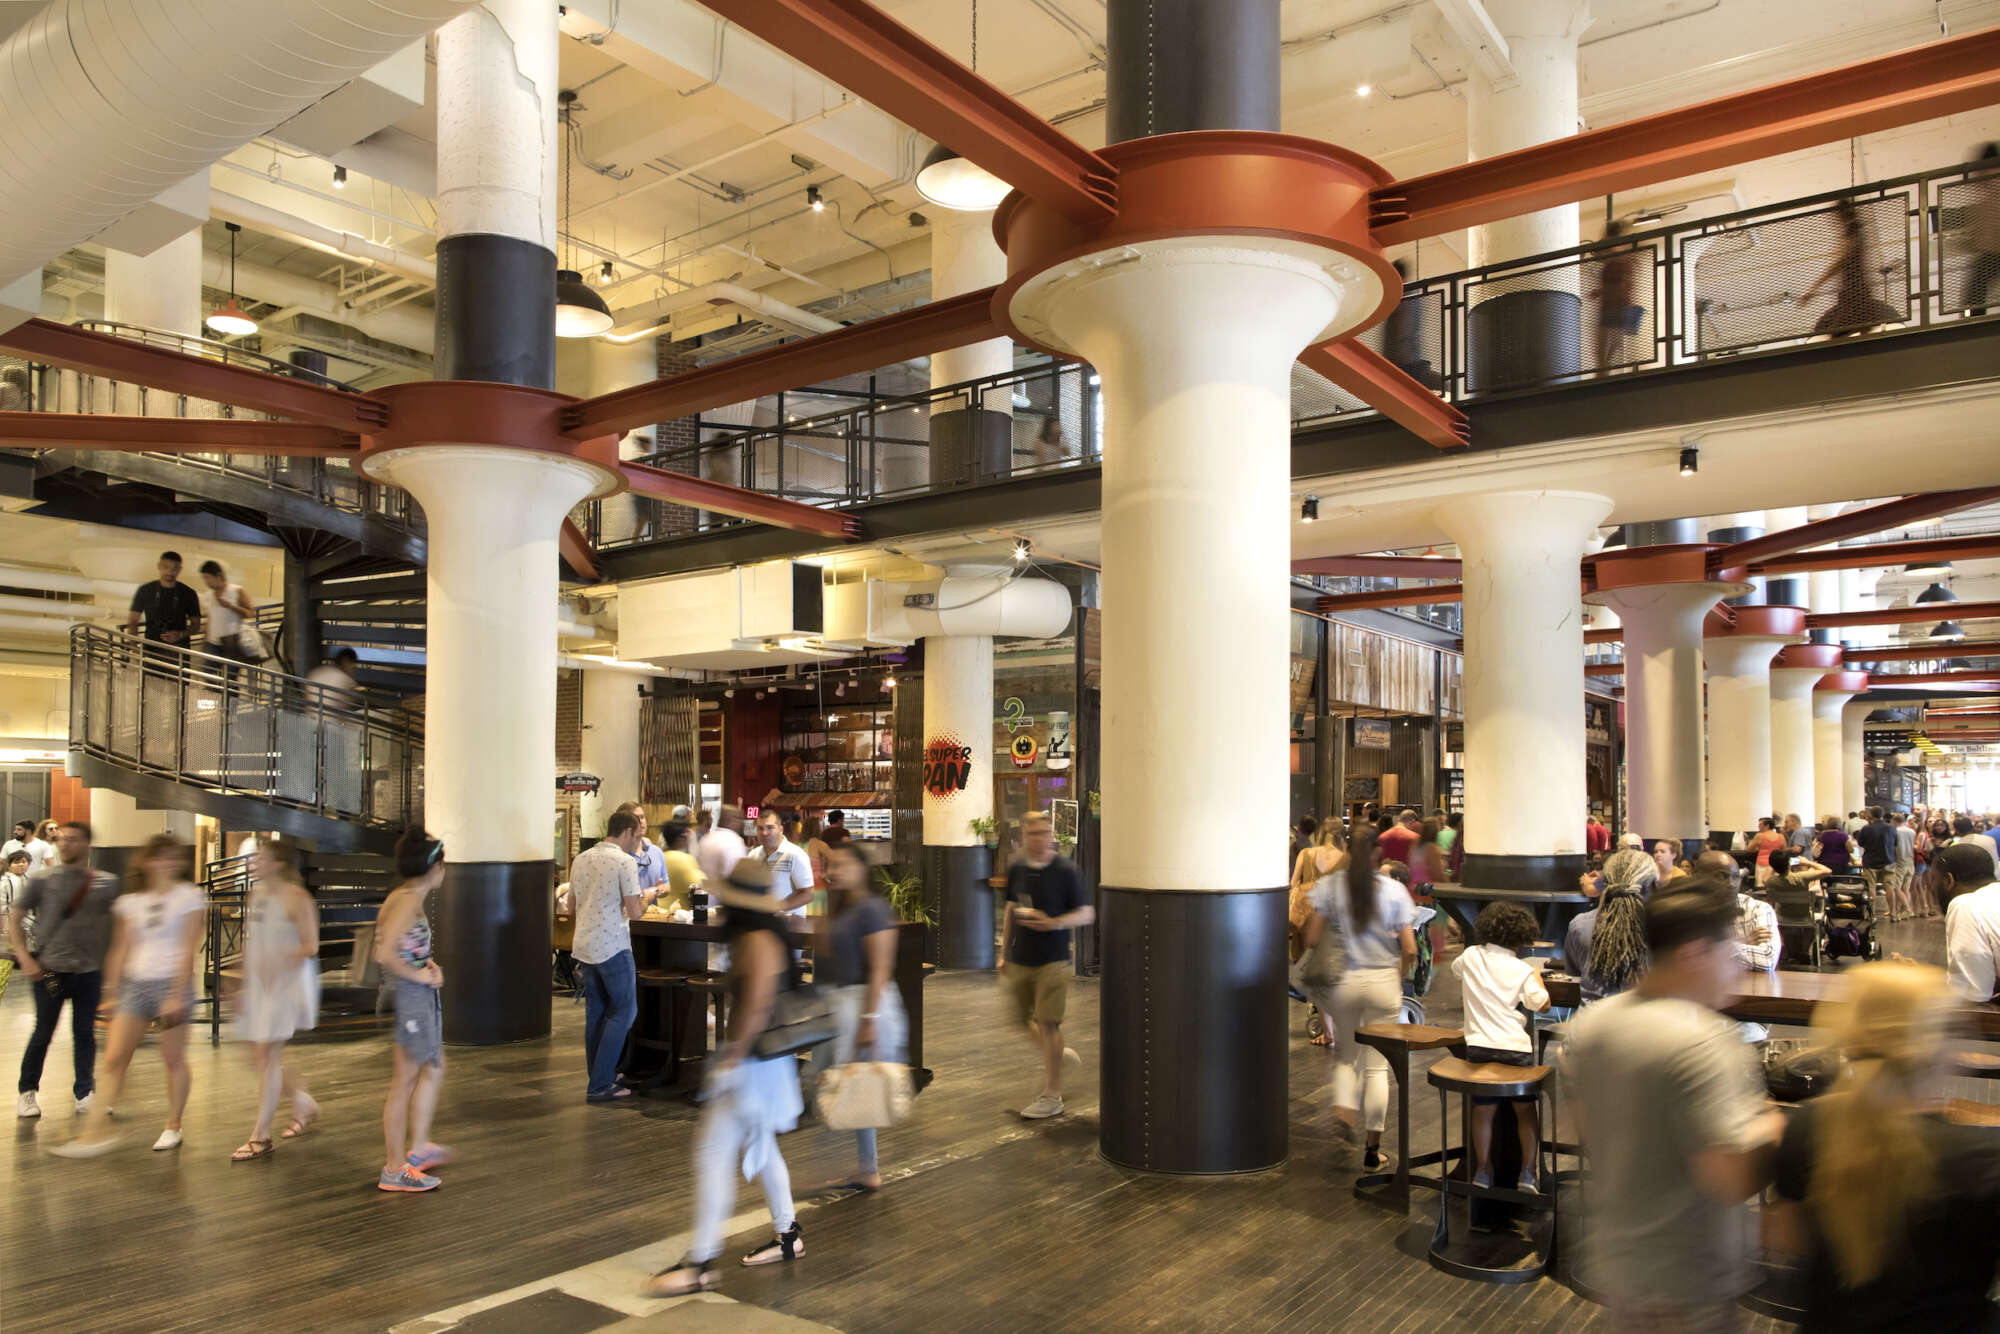 The lunch rush in the Central Food Hall of Ponce City Market